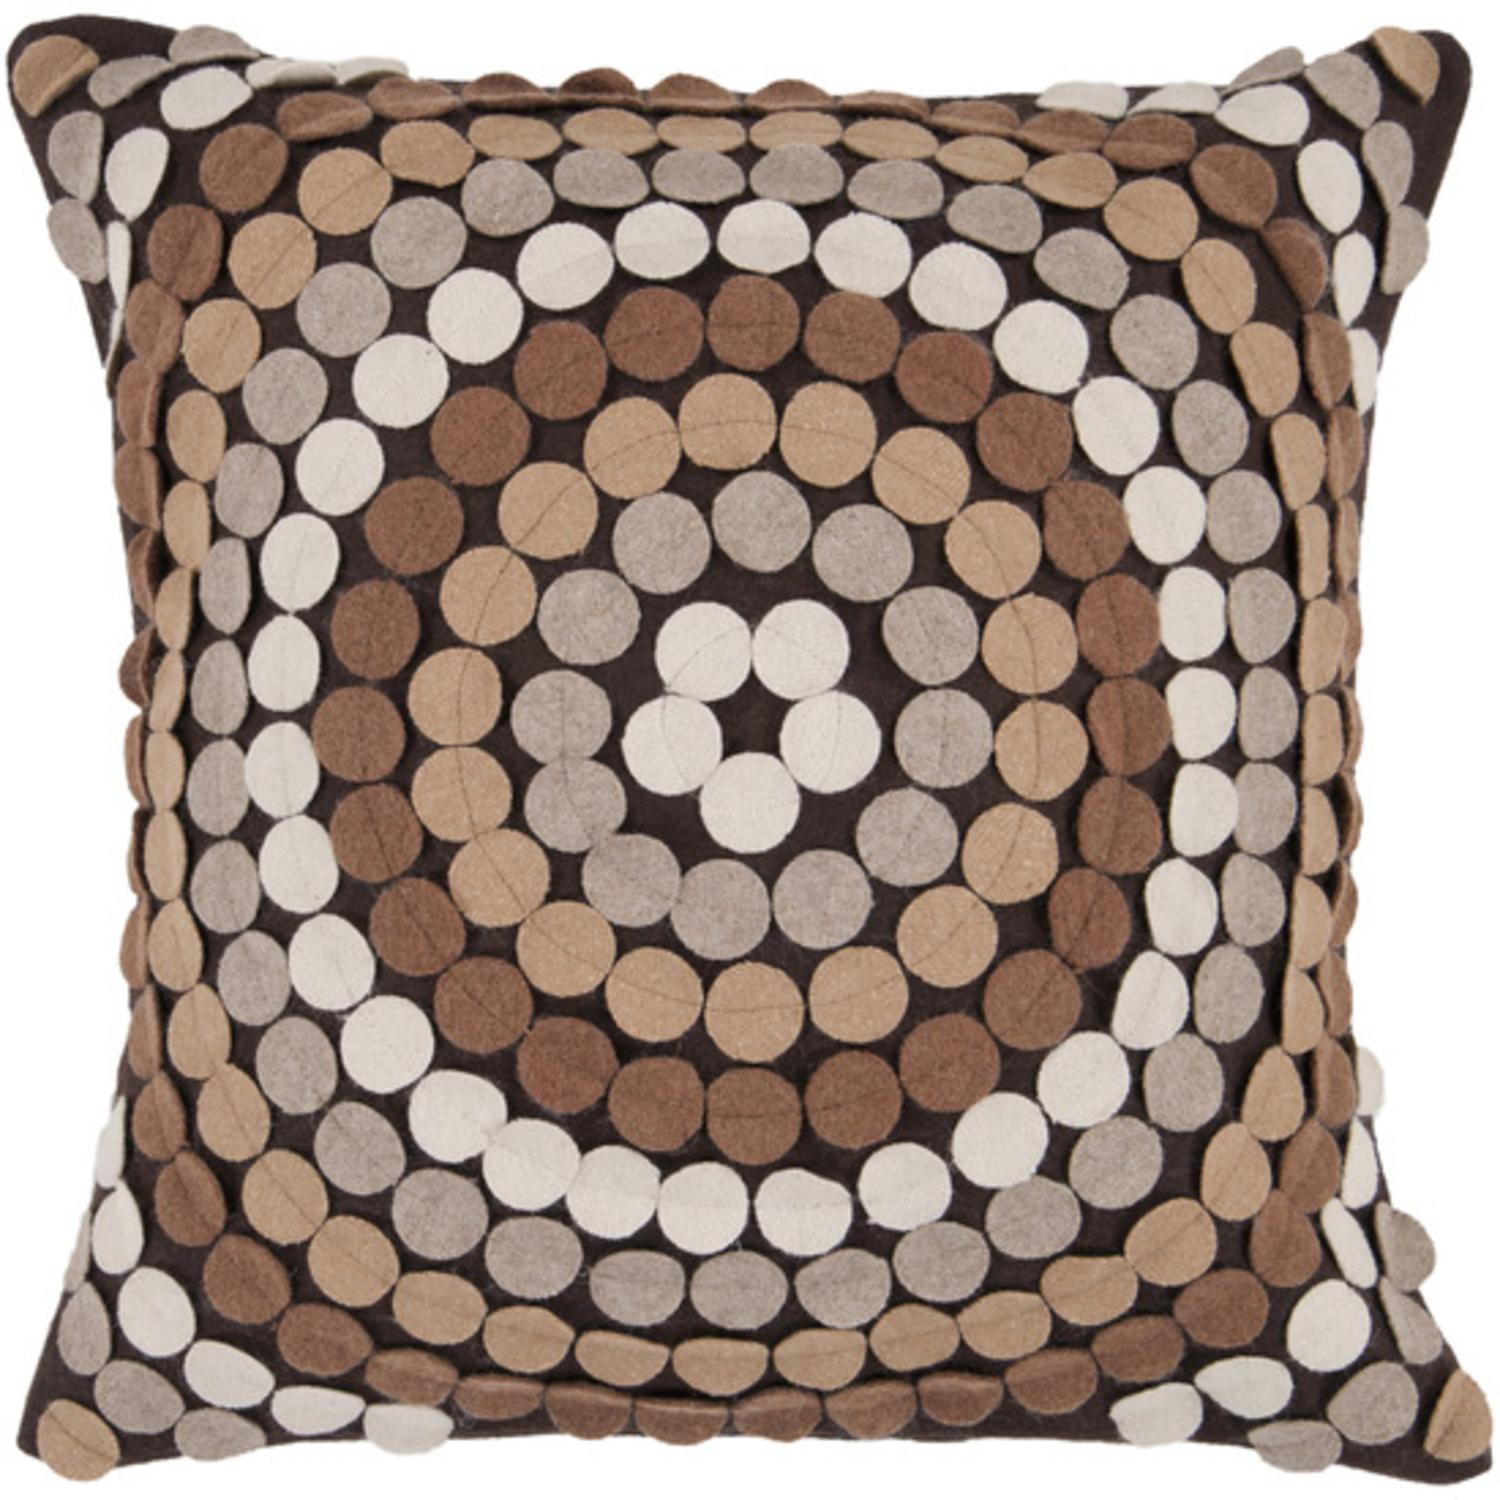 "22"" Espresso Brown Toned Applique Mandala Decorative Throw Pillow"